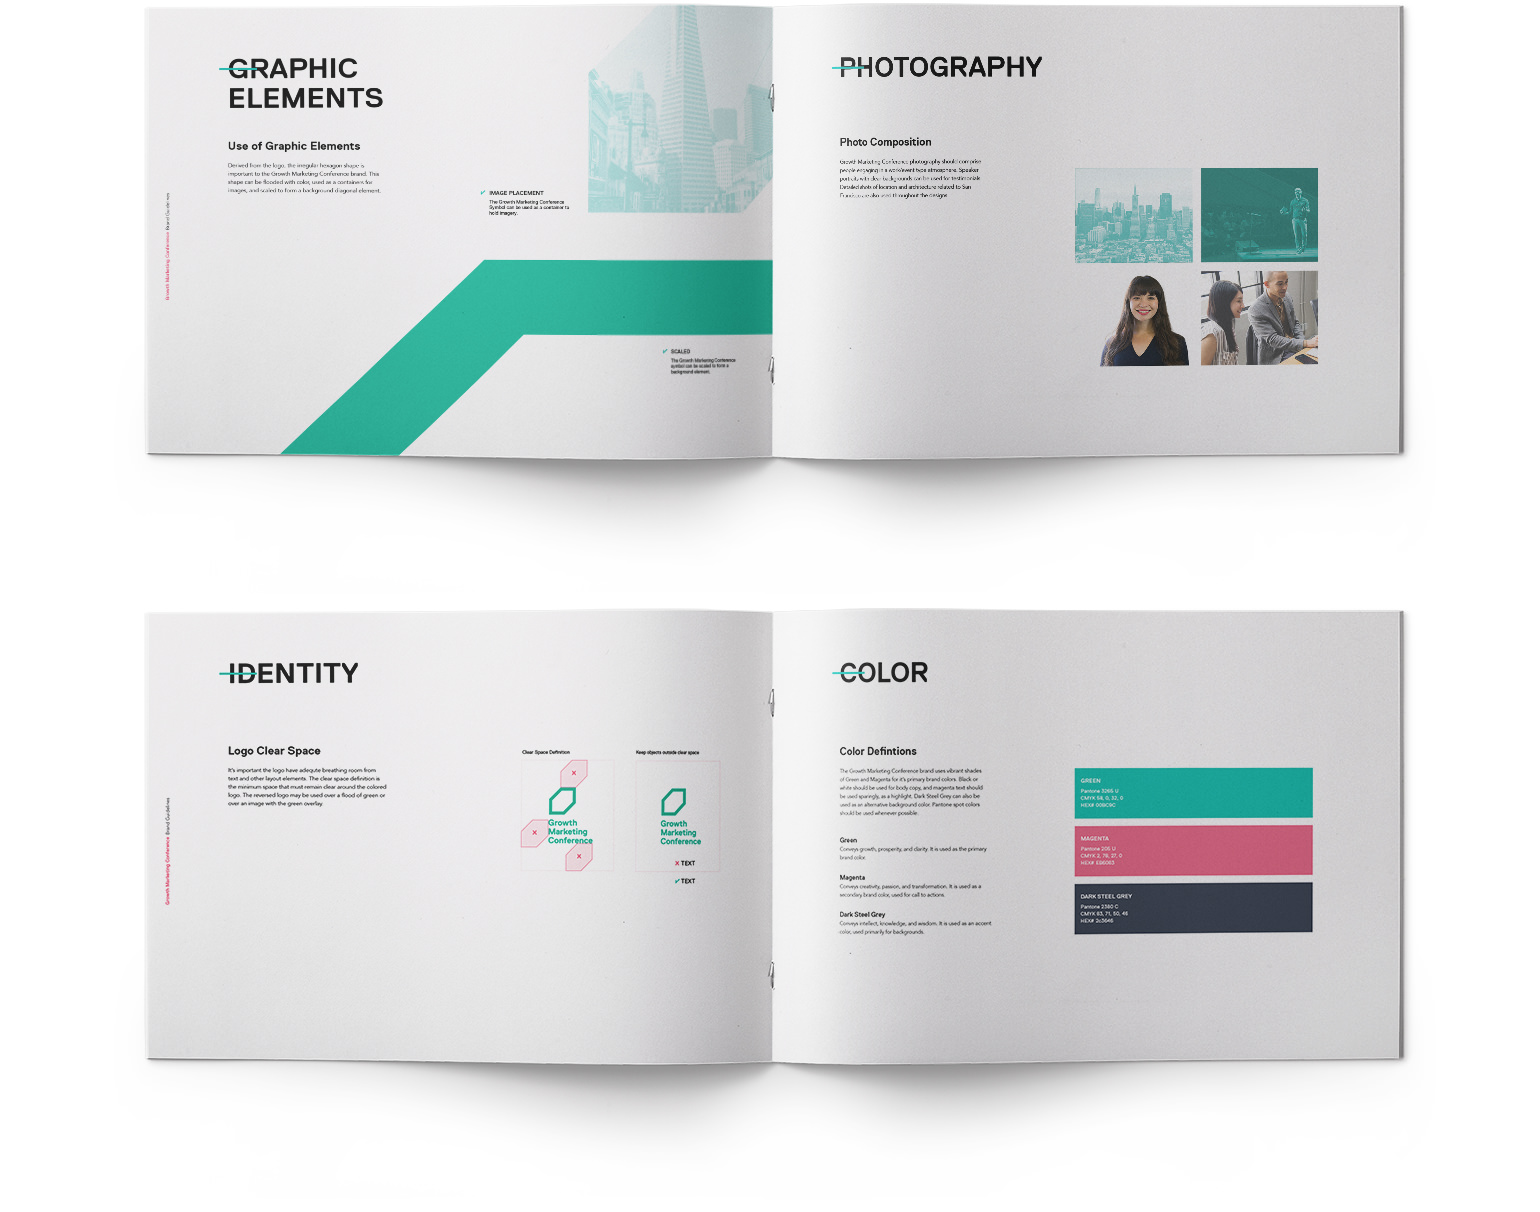 Ignyte-branding-agency-growth-marketing-conference-brand-guidelines-V2